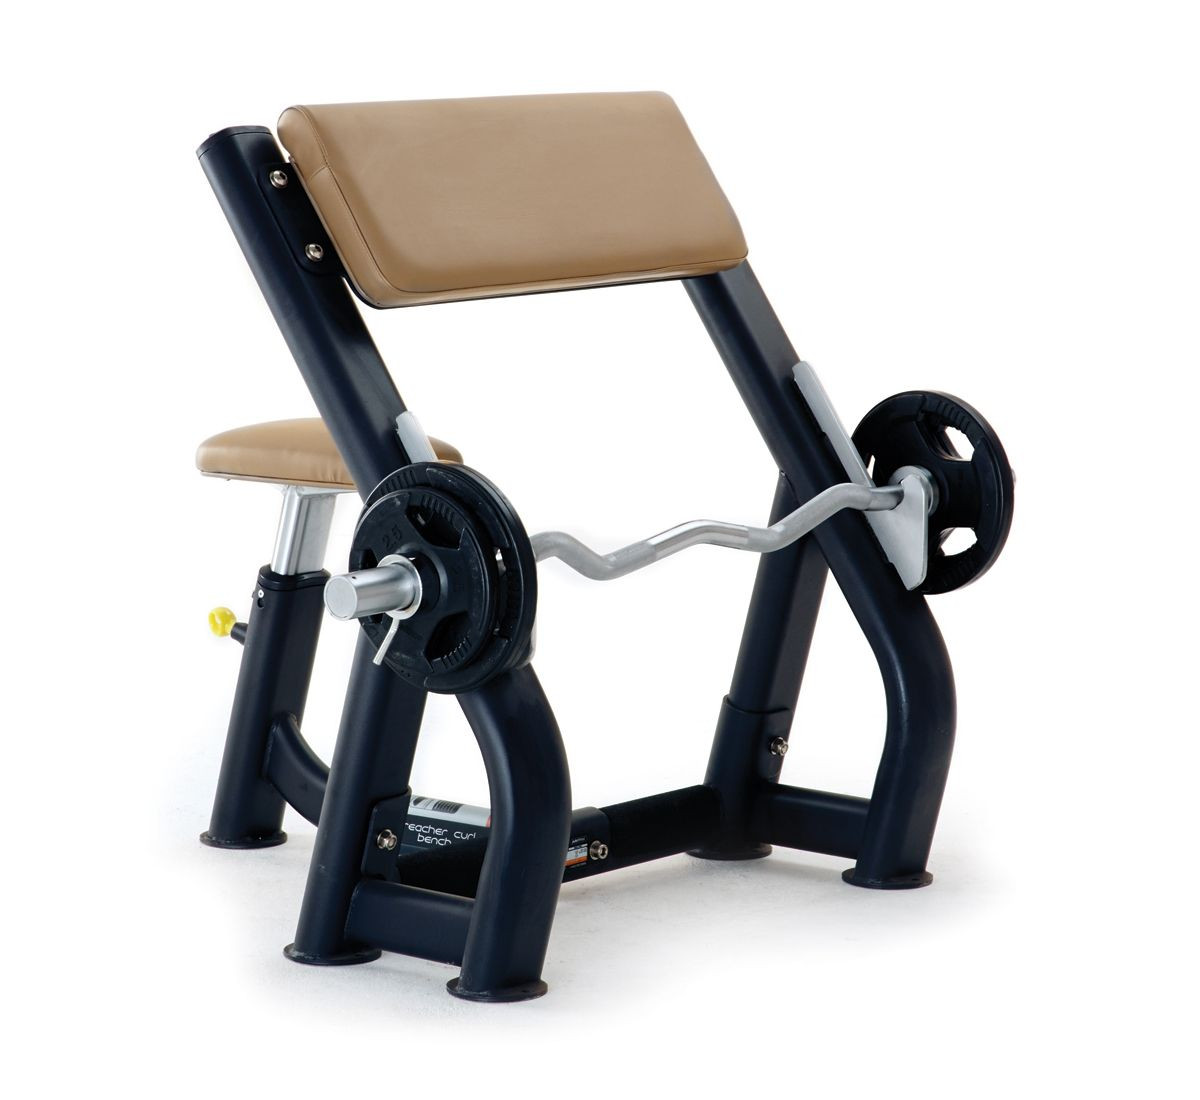 NEW! PULSE FITNESS - Preacher Curl Bench - CALL US FOR SPECIAL PRICING